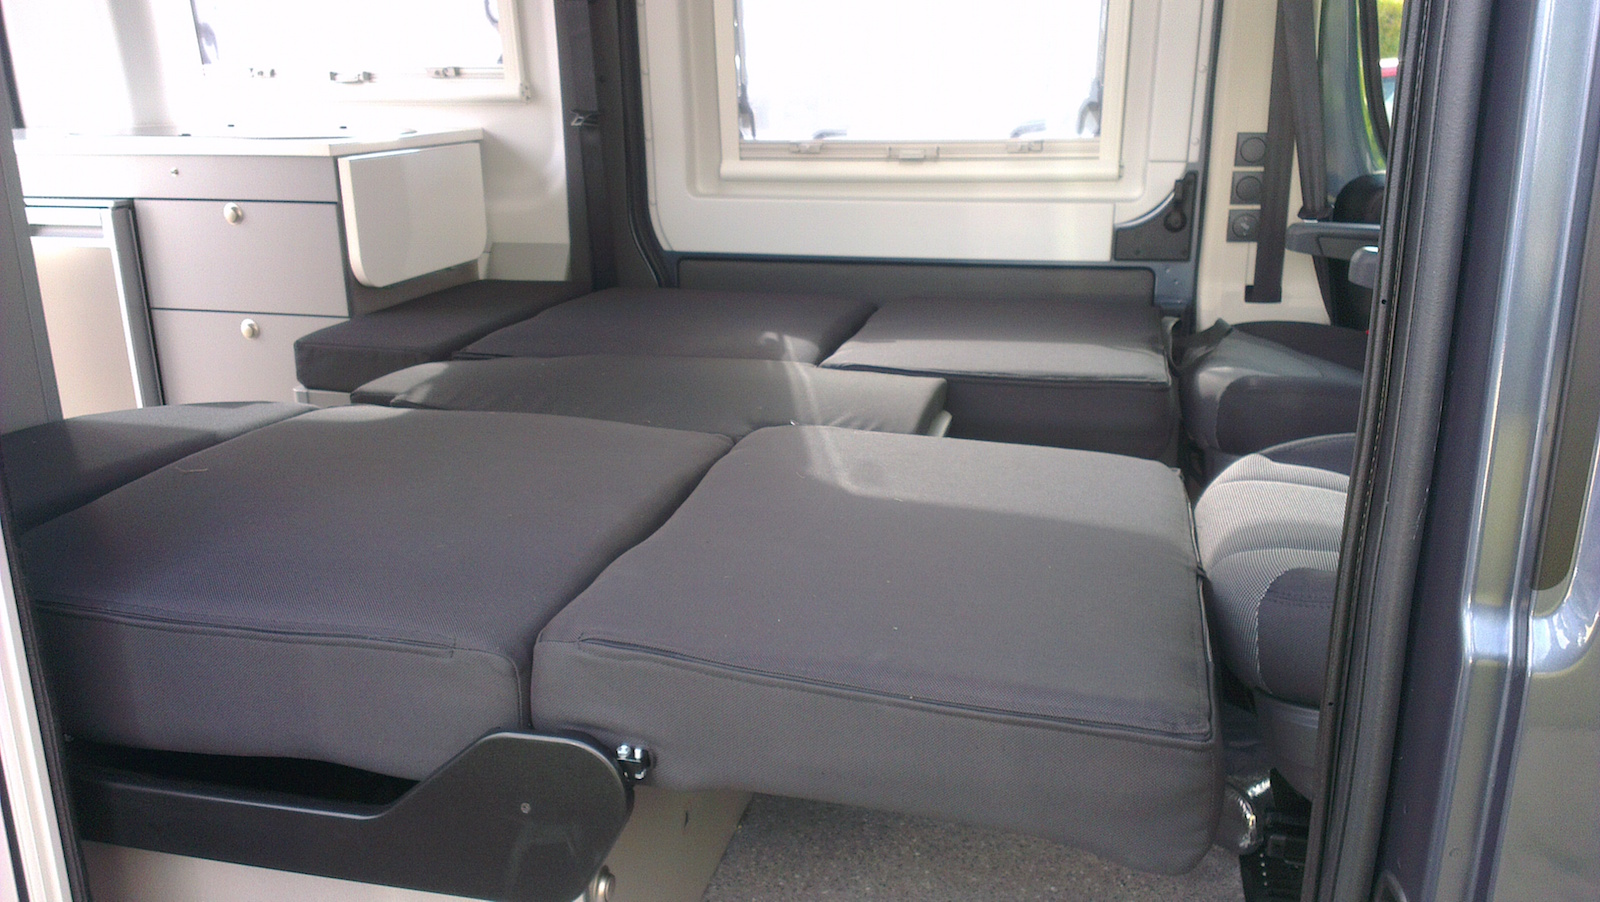 2 Berth Motorhome For Hire Adria Twin 500s Motorhome Holiday Company